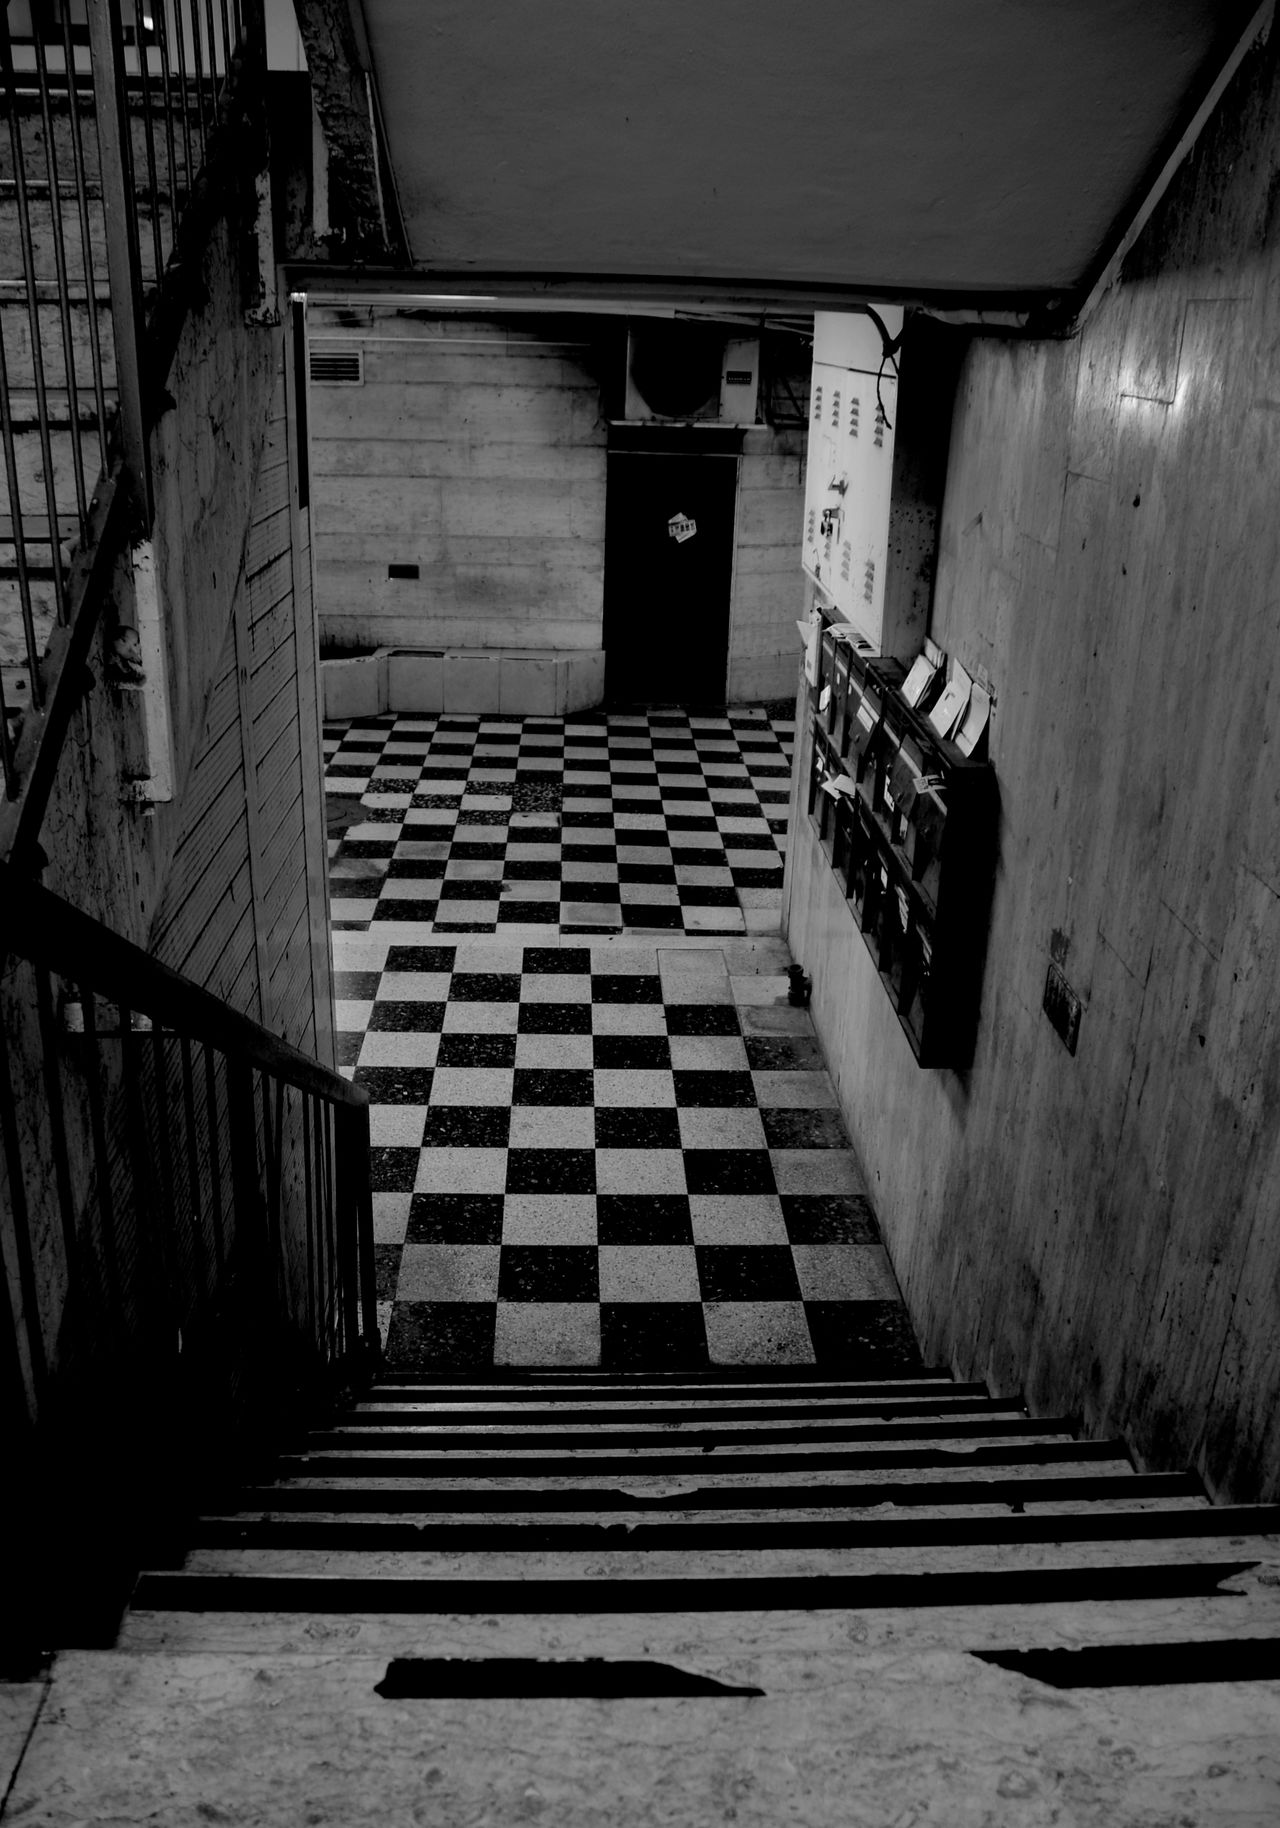 Absence Architecture Black And White Chessboard Pattern Empty Entrance Narrow No People Old Buildings Staircase Stairs Walkway The Secret Spaces